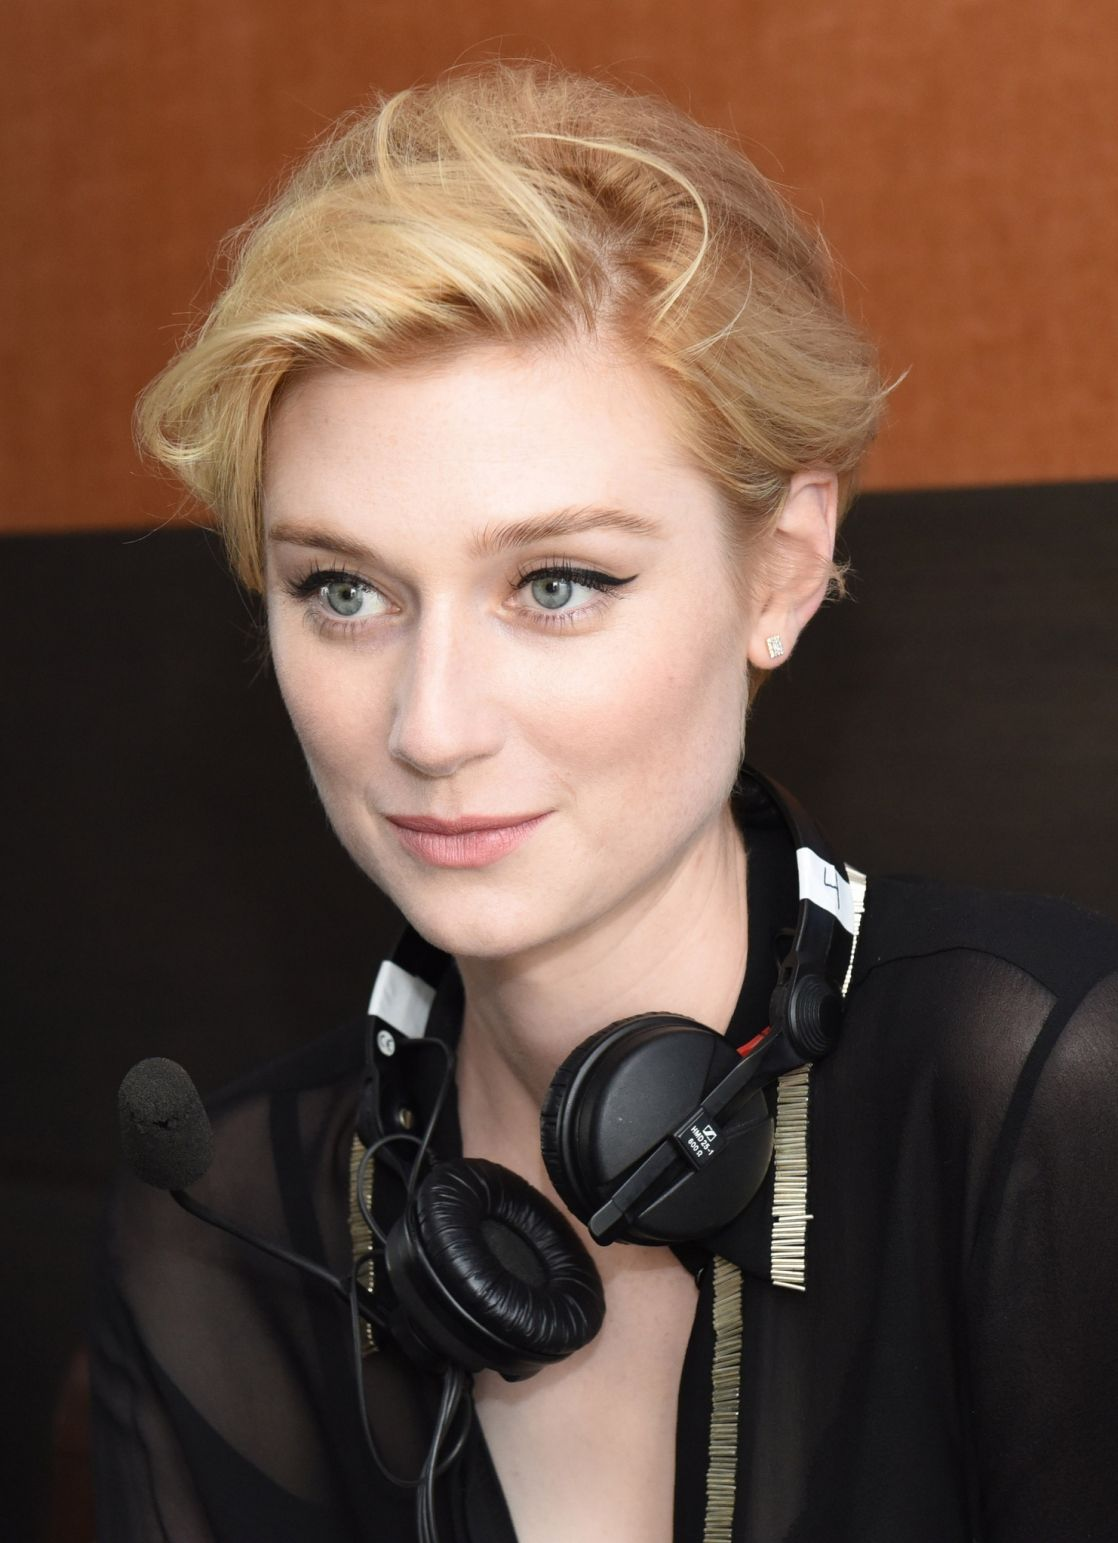 Elizabeth Debicki For Guardians Of The Galaxy Vol 2 At Comic Con 2016 01 Elizabeth Debicki Makeup For Black Women Cute Beauty